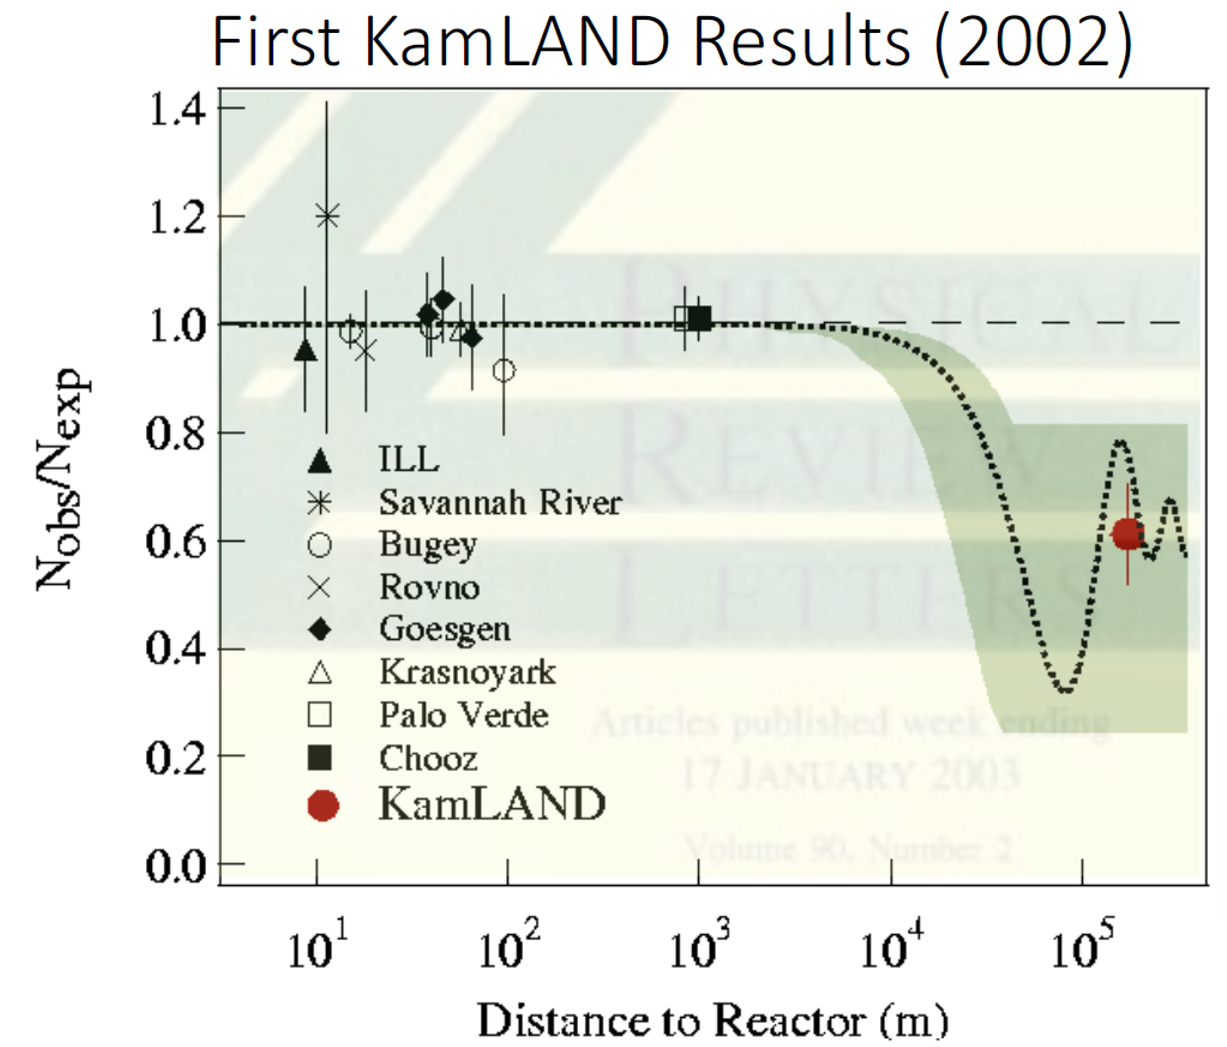 Kamland first result in 2002